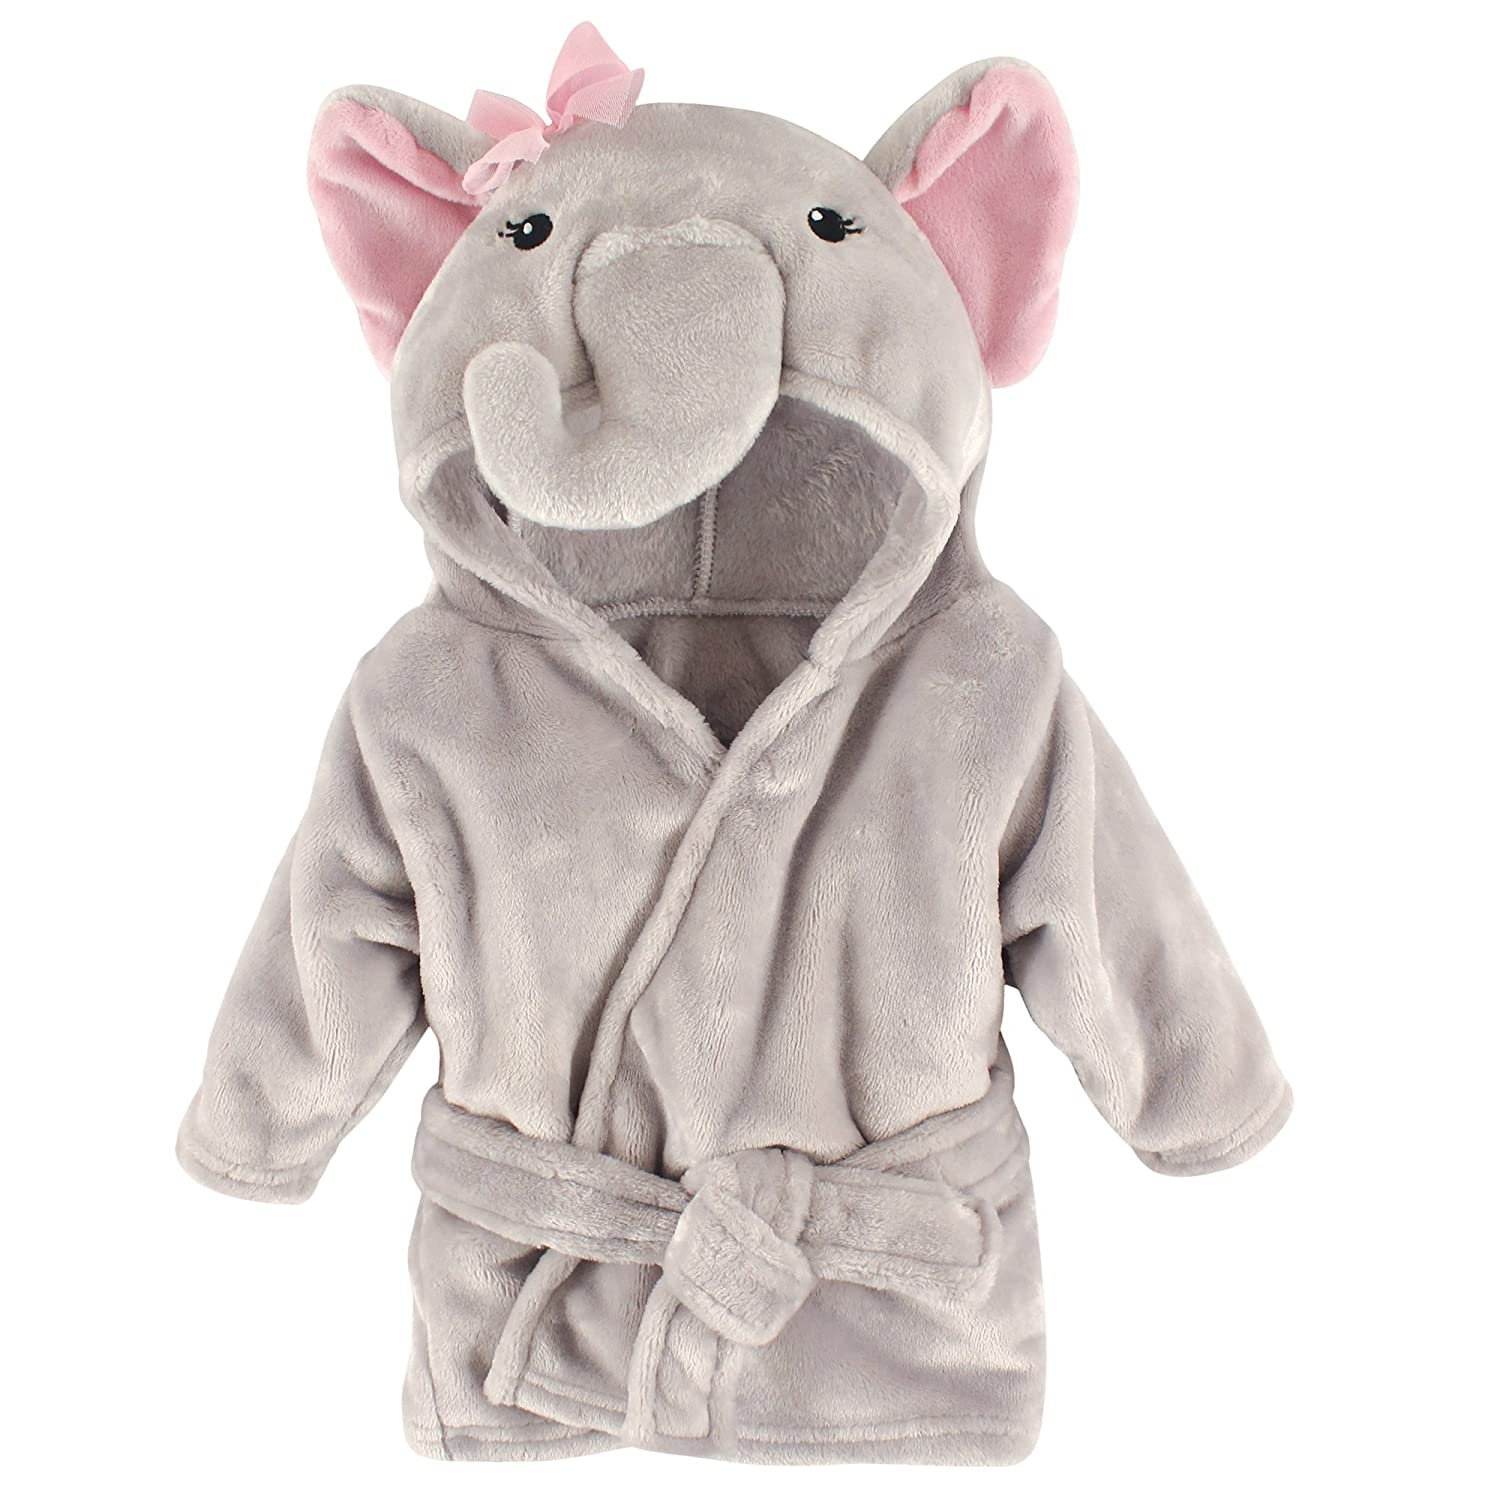 0-9 Months Fox Hudson Baby Soft Plush Bathrobe